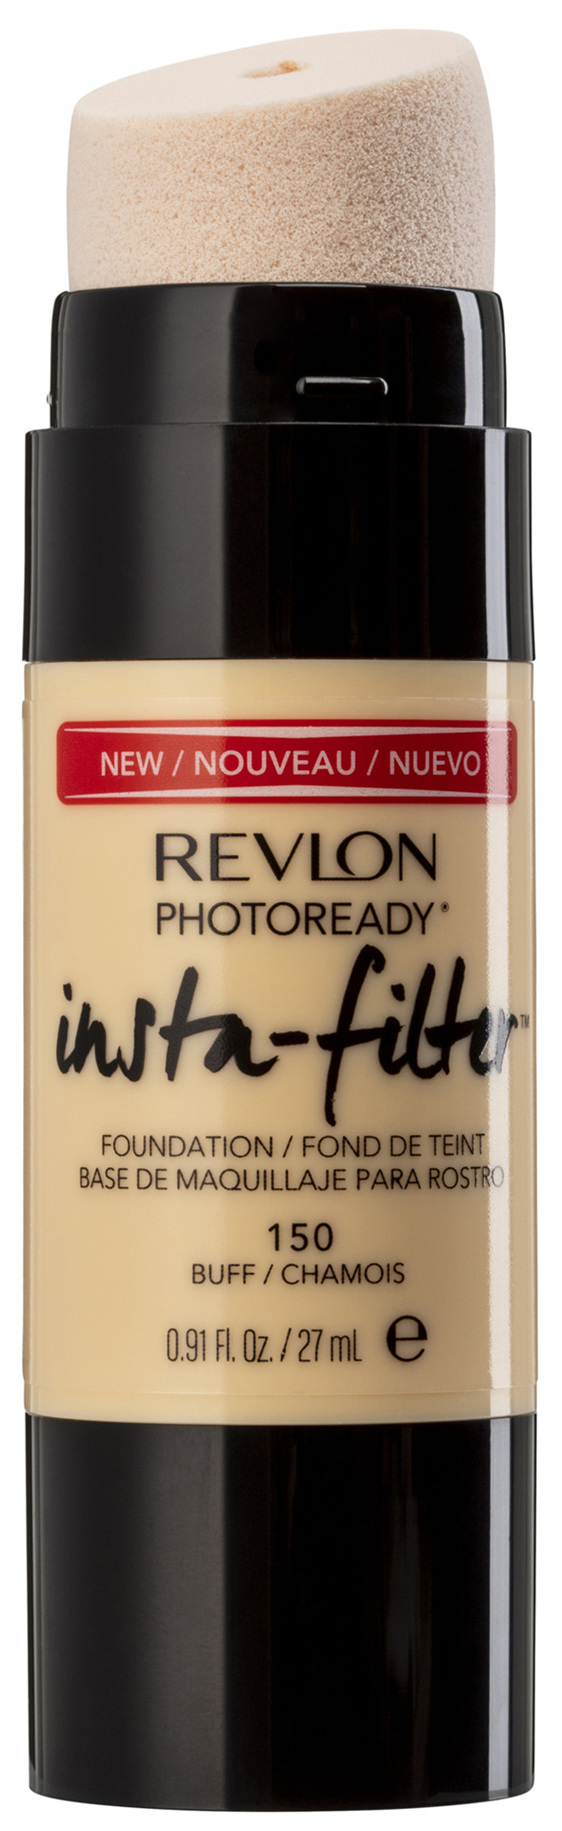 Revlon Photoready Insta-Filter™ Foundation Buff